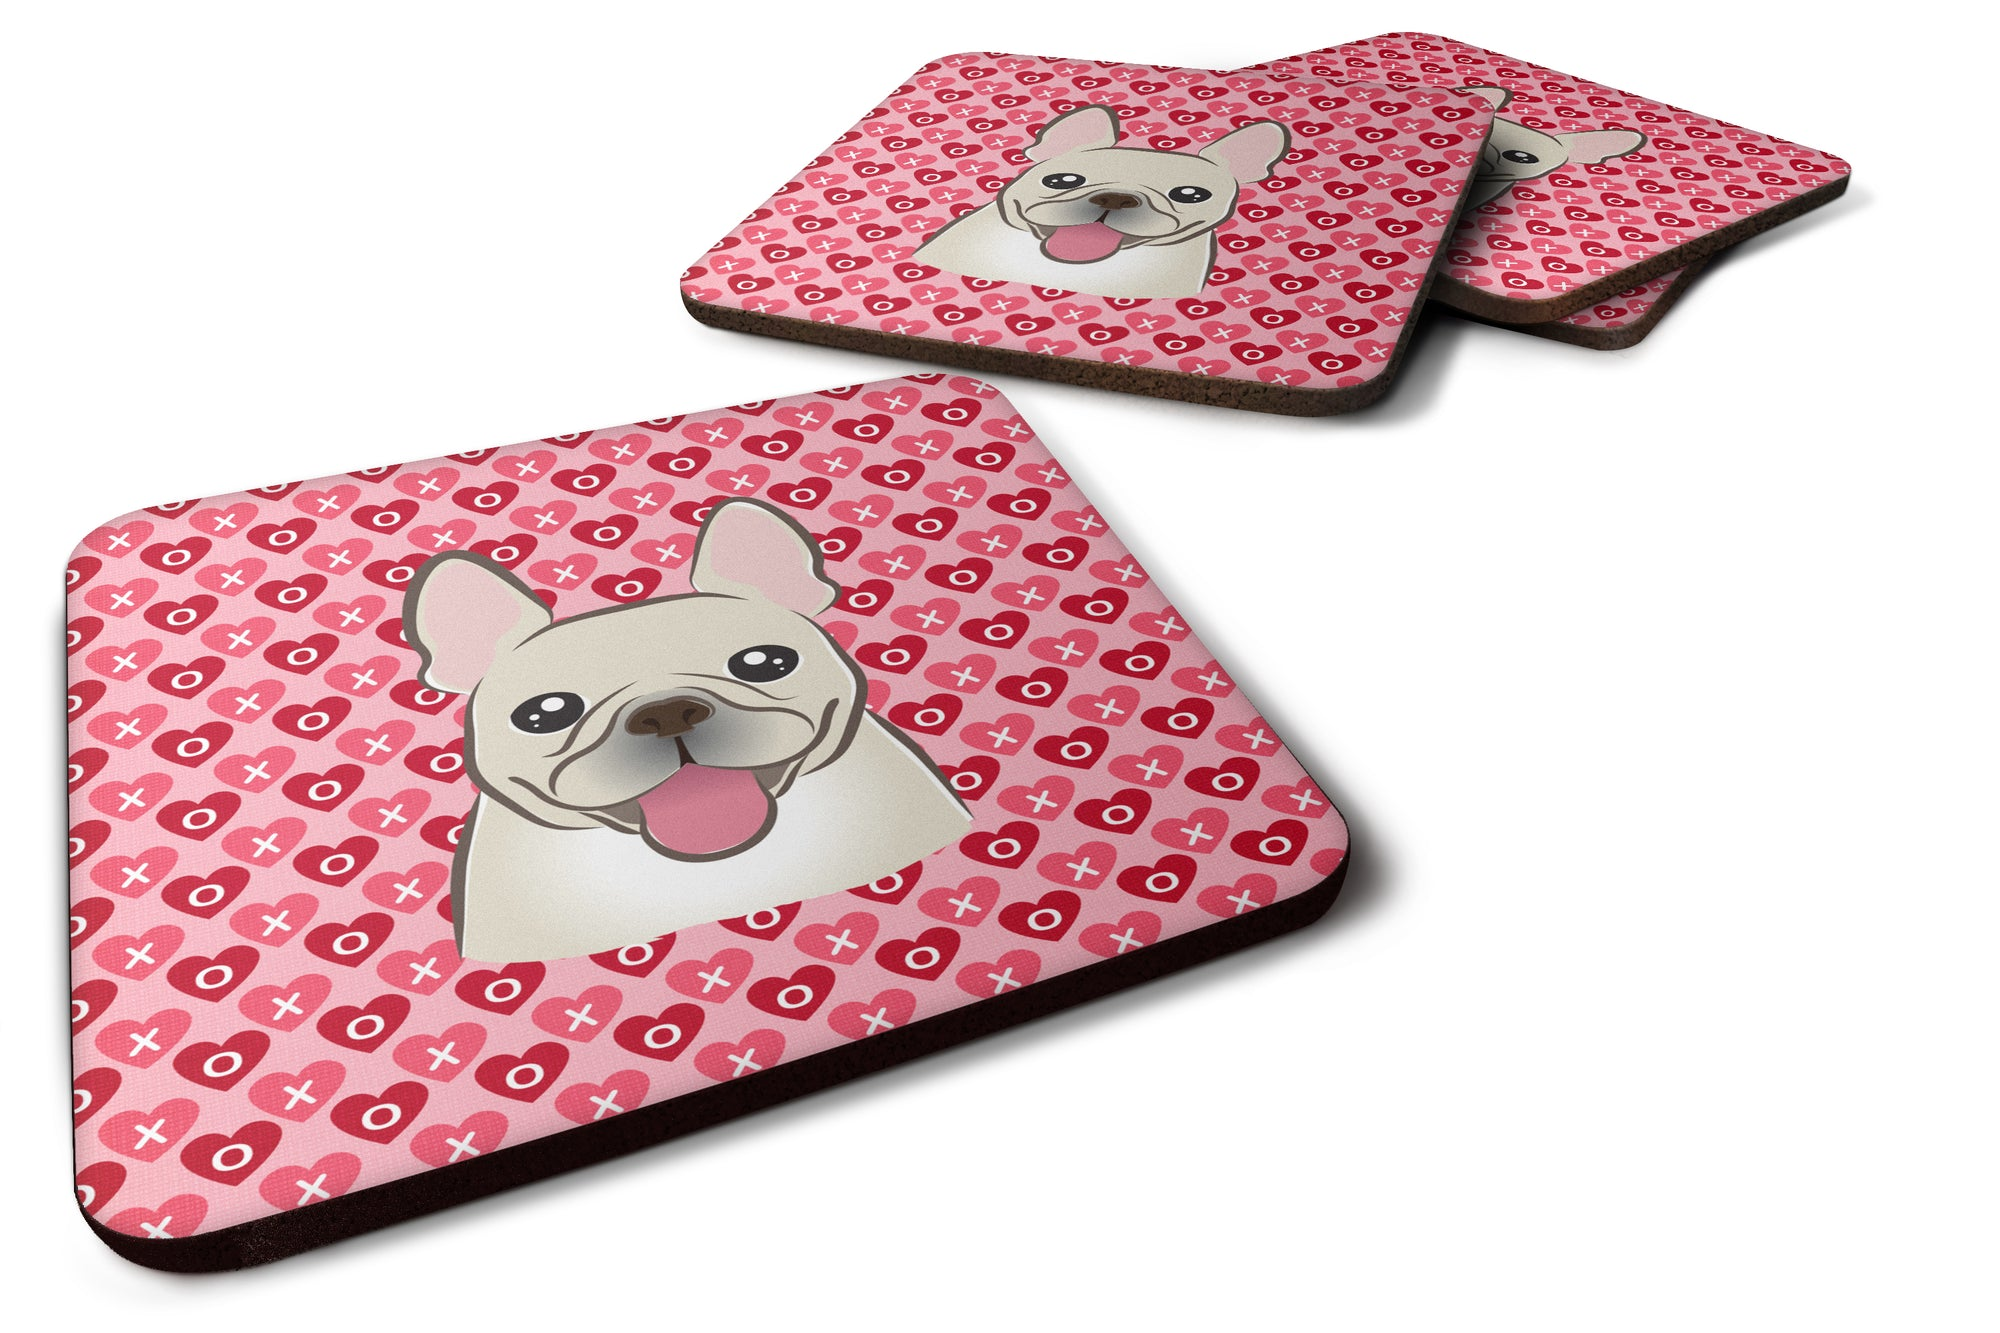 French Bulldog Hearts Foam Coaster Set of 4 BB5308FC by Caroline's Treasures